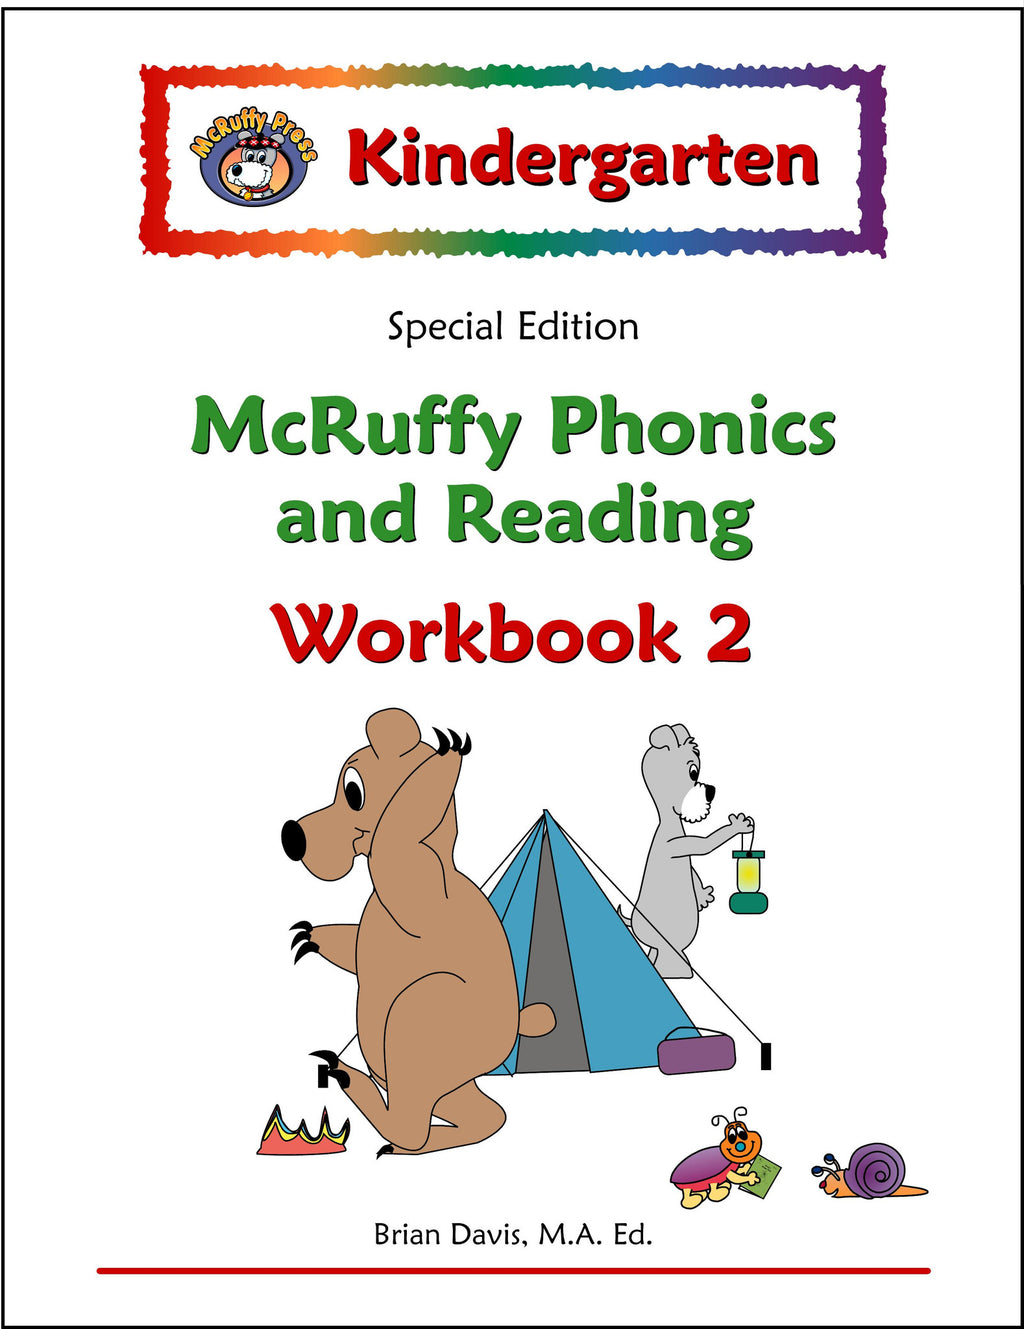 Kindergarten SE Phonics and Reading Workbook 2 - McRuffy Press